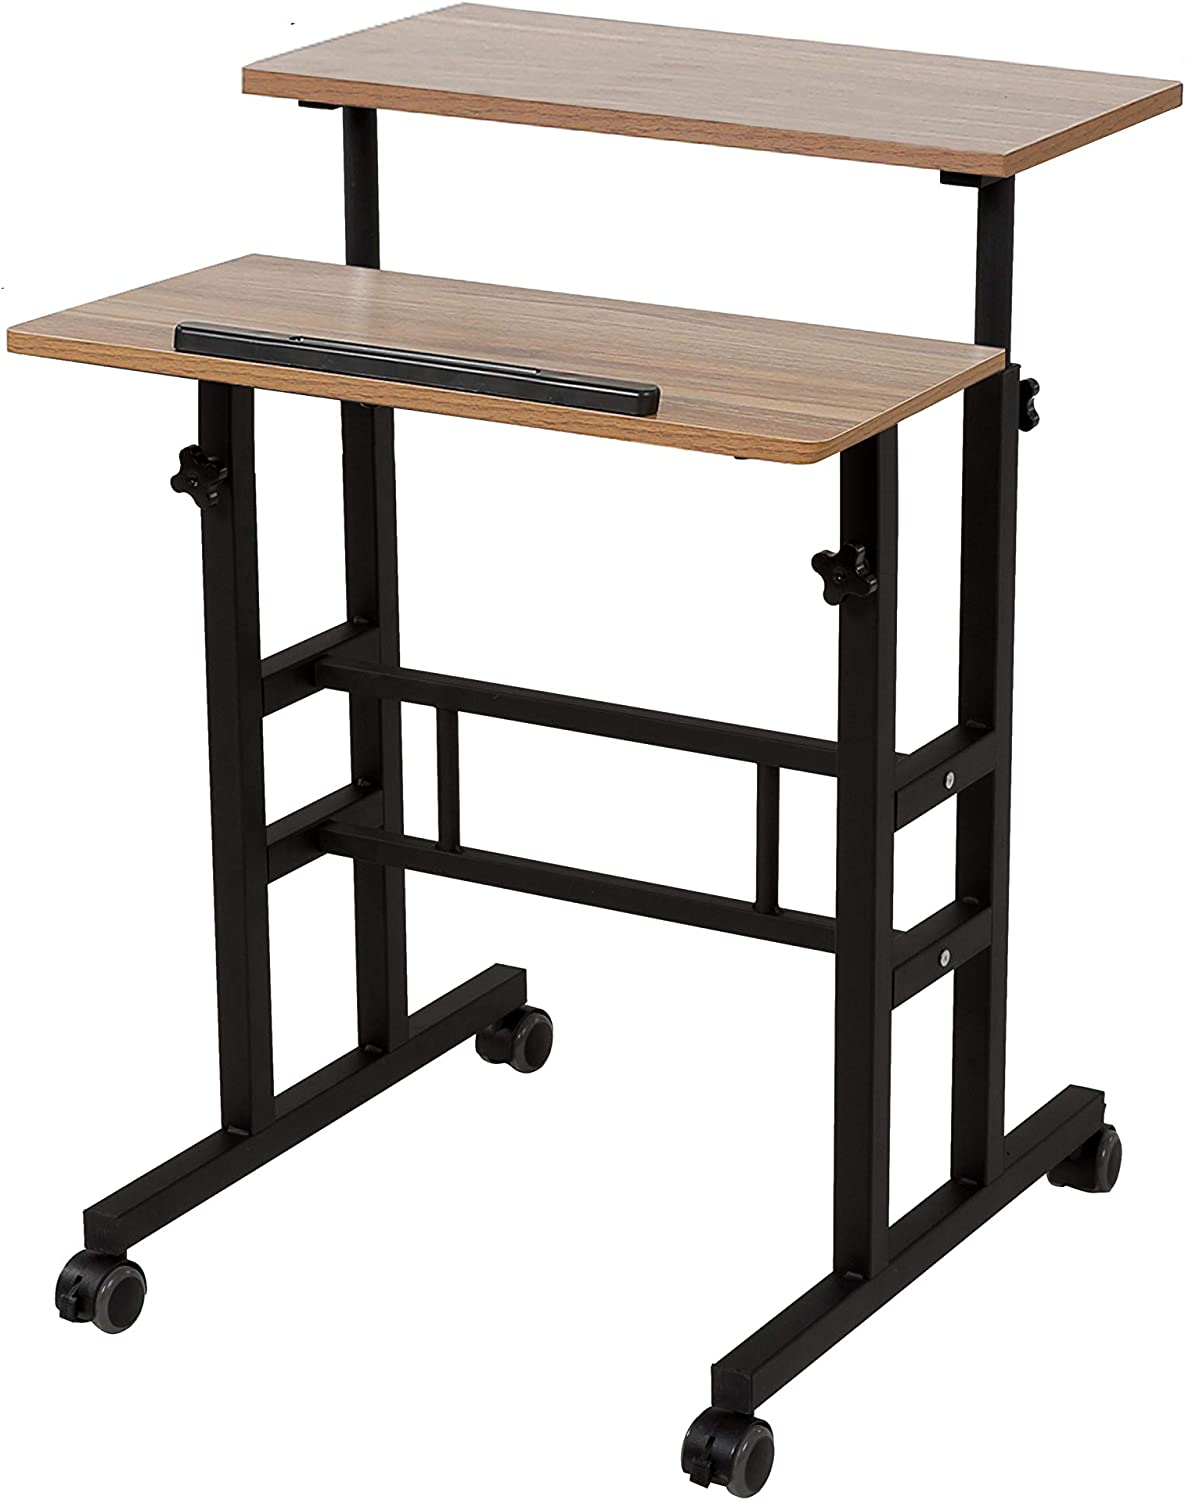 SDADI 2 Inches Carpet Wheels Mobile Standing Desk Stand Up Desk Height Adjustable Home Office Desk with Standing and Seating 2 Modes 3.0 Edition,Oak S001BFDT